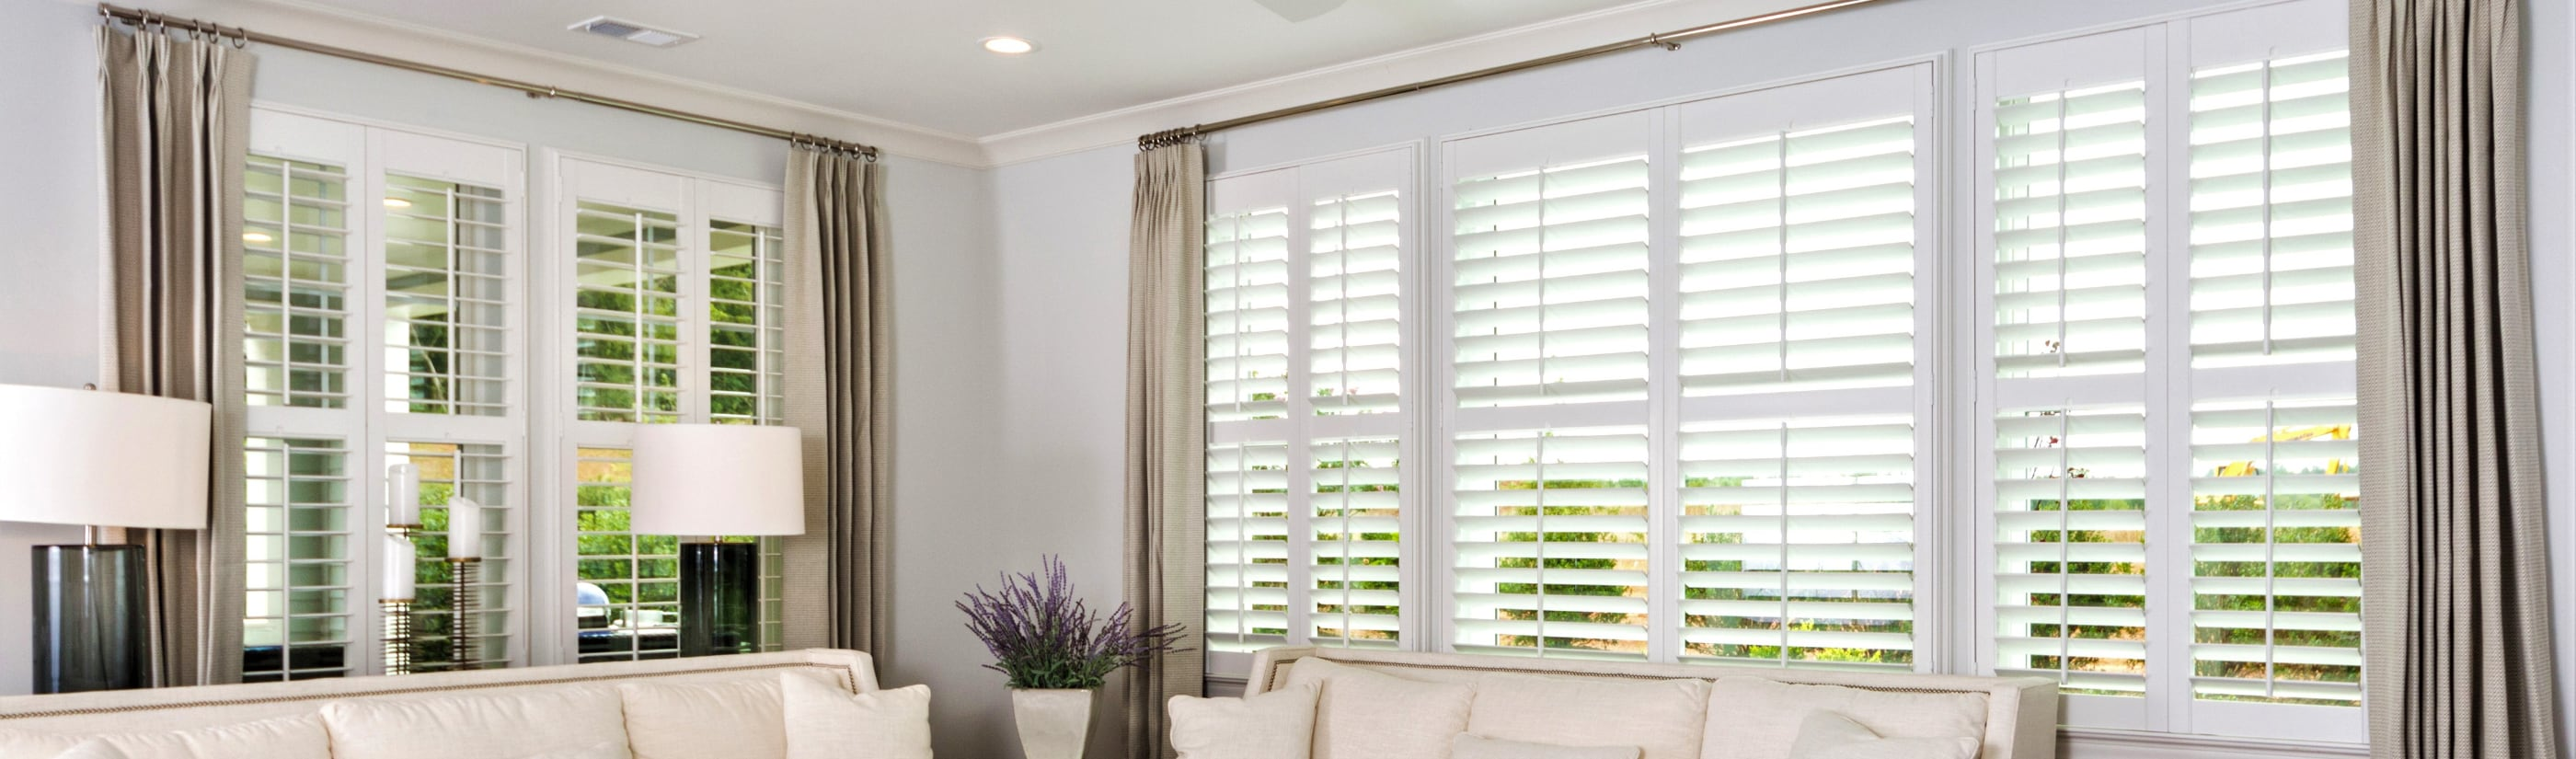 Polywood Shutters Paints In Phoenix